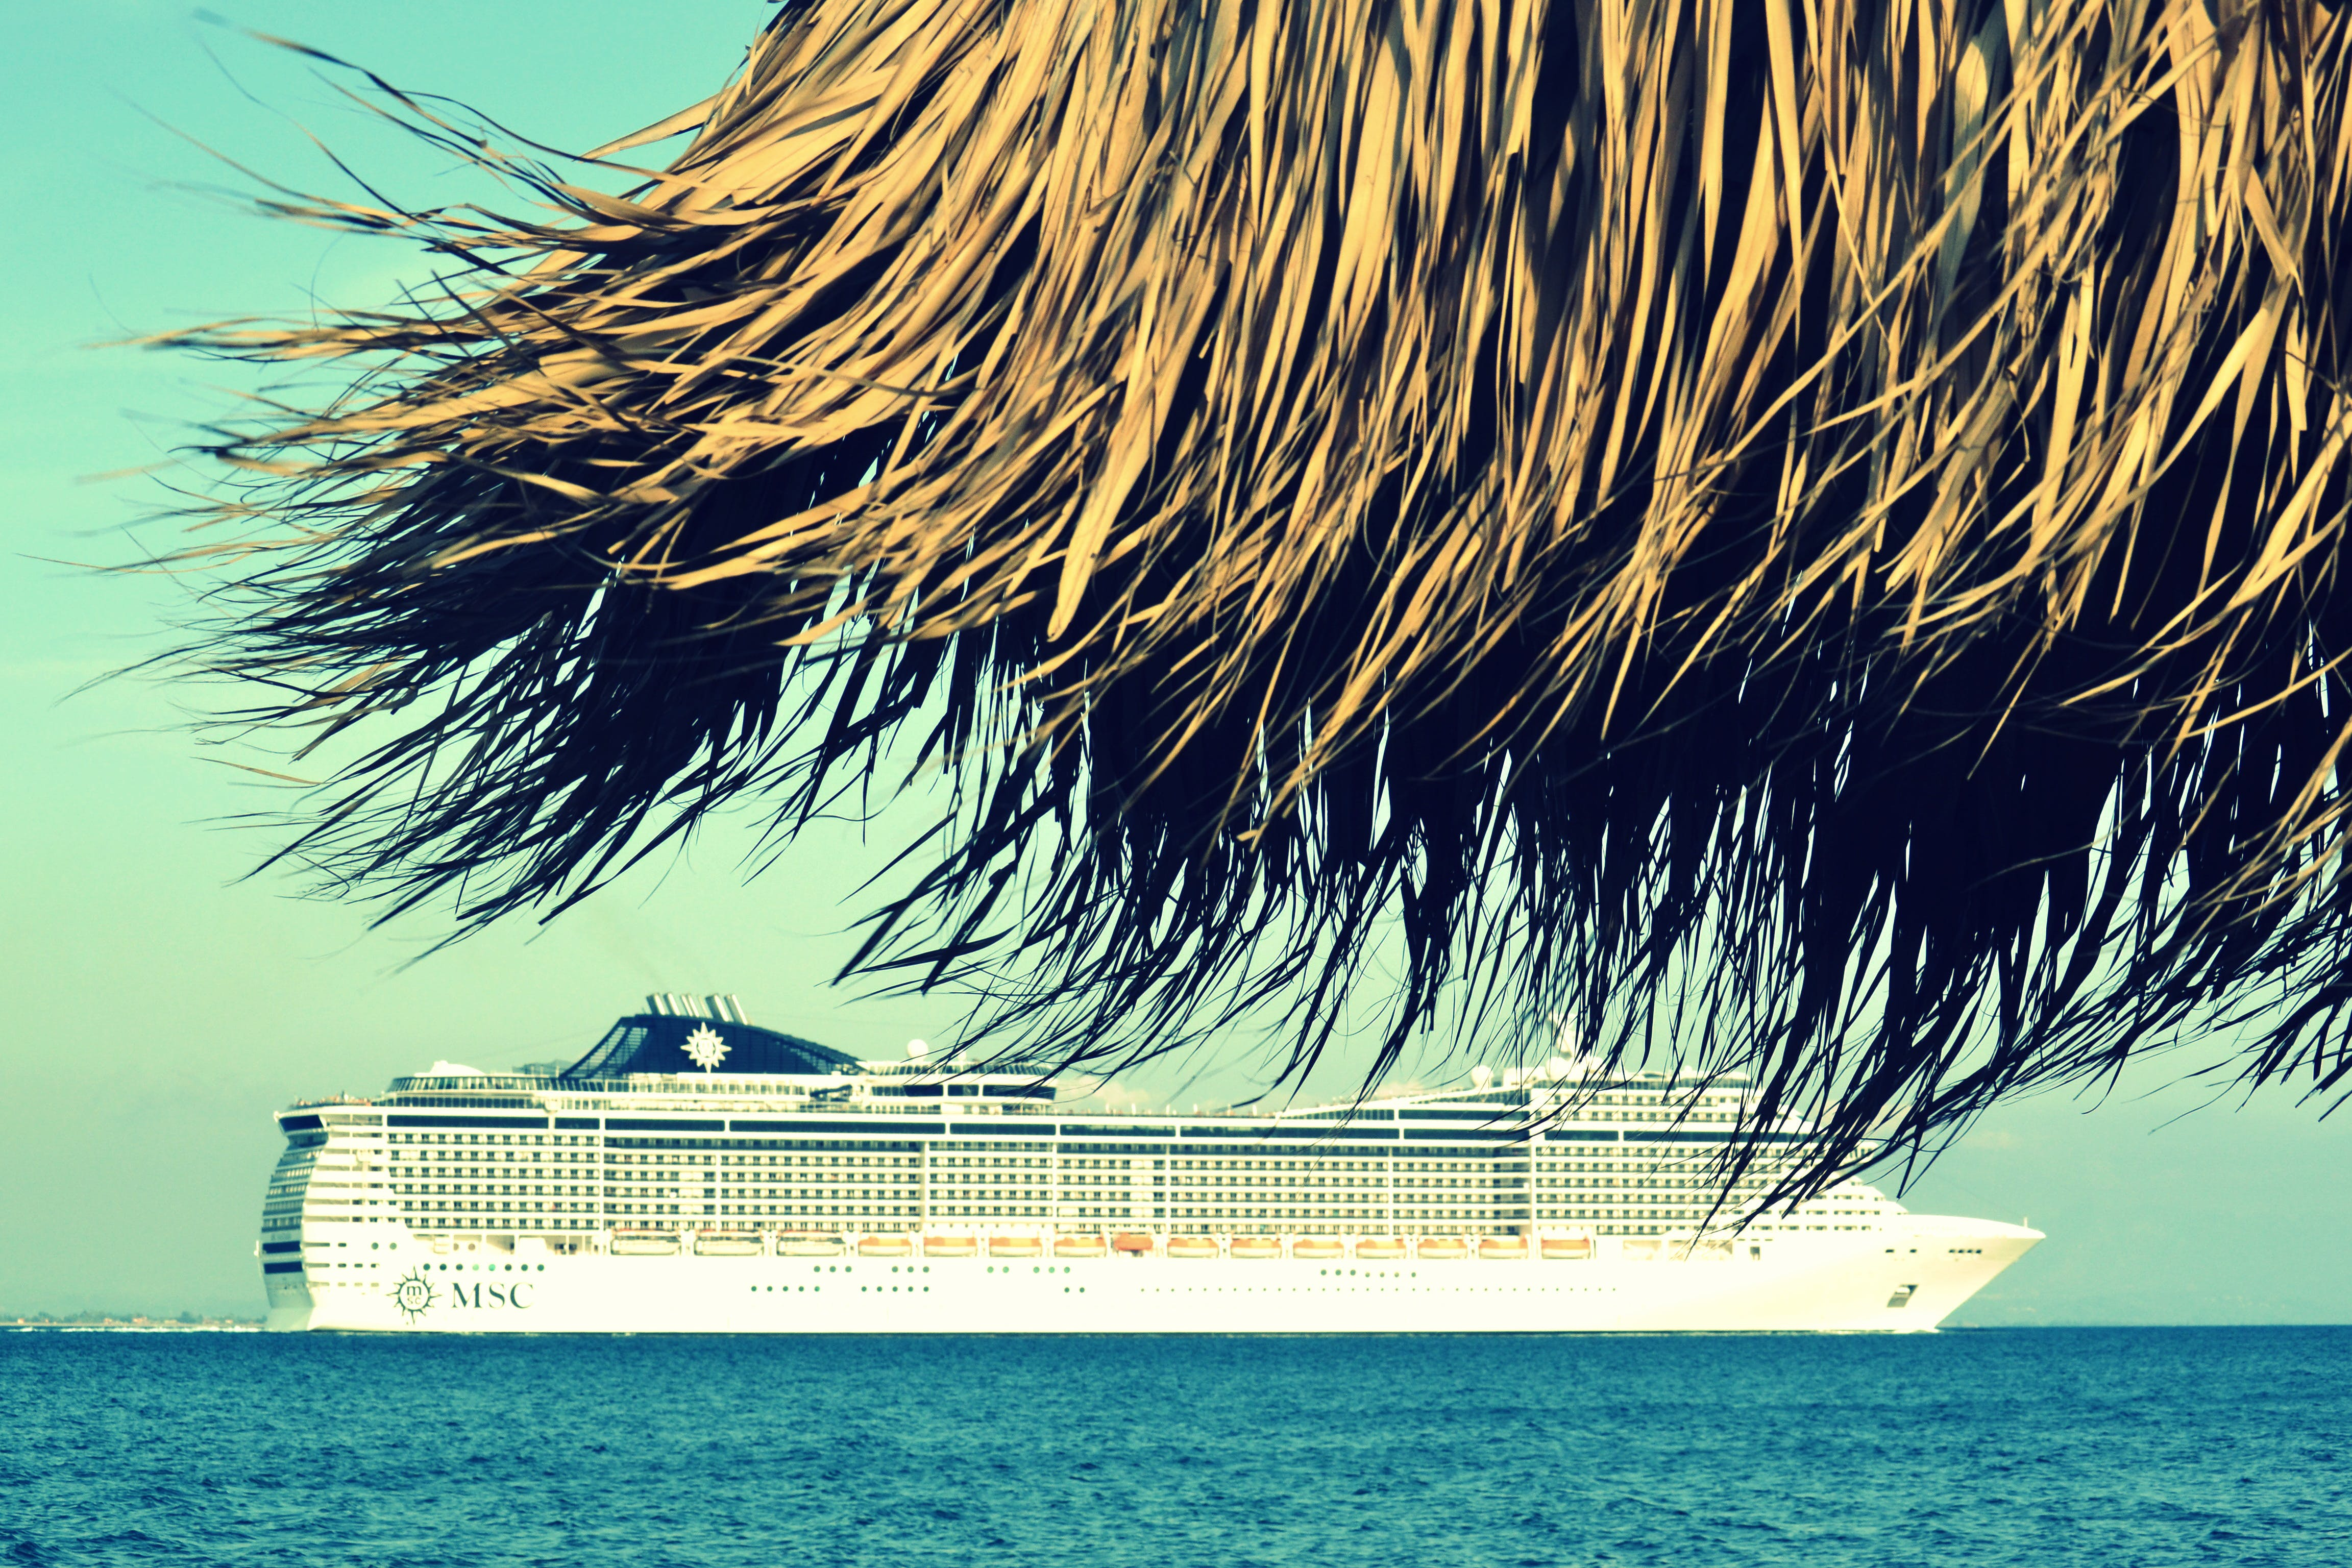 Cruise Ship Roaming on Body of Water